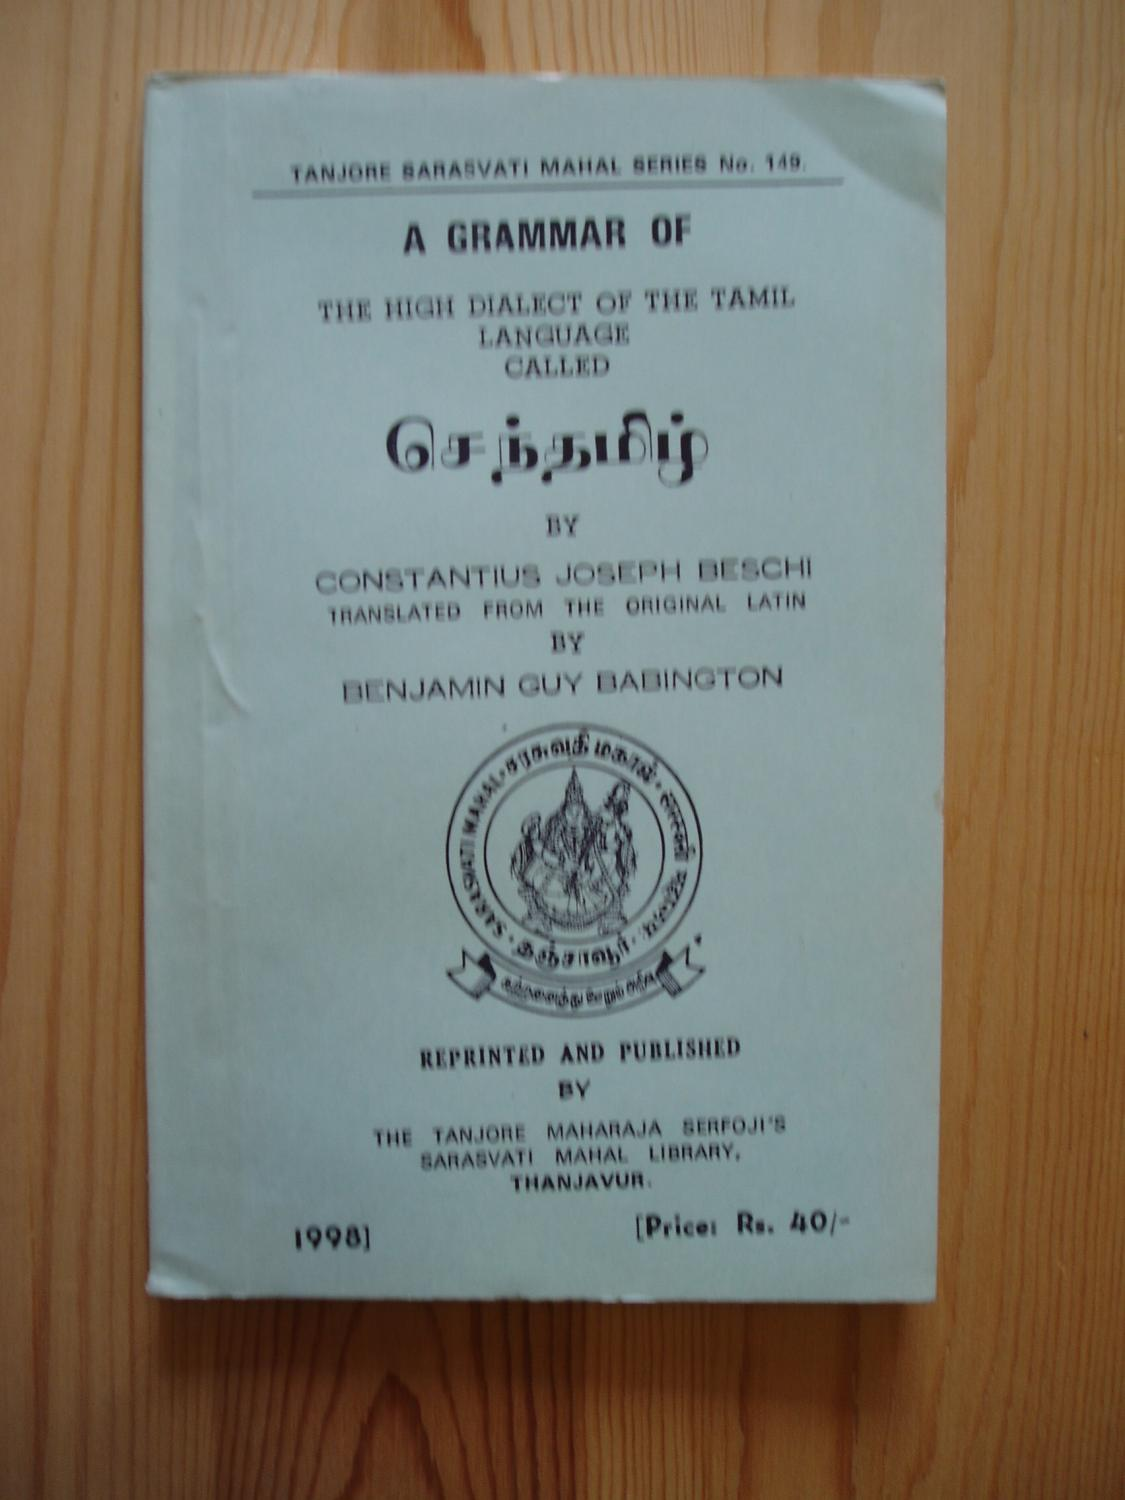 A Grammar of the High Dialect of the Tamil